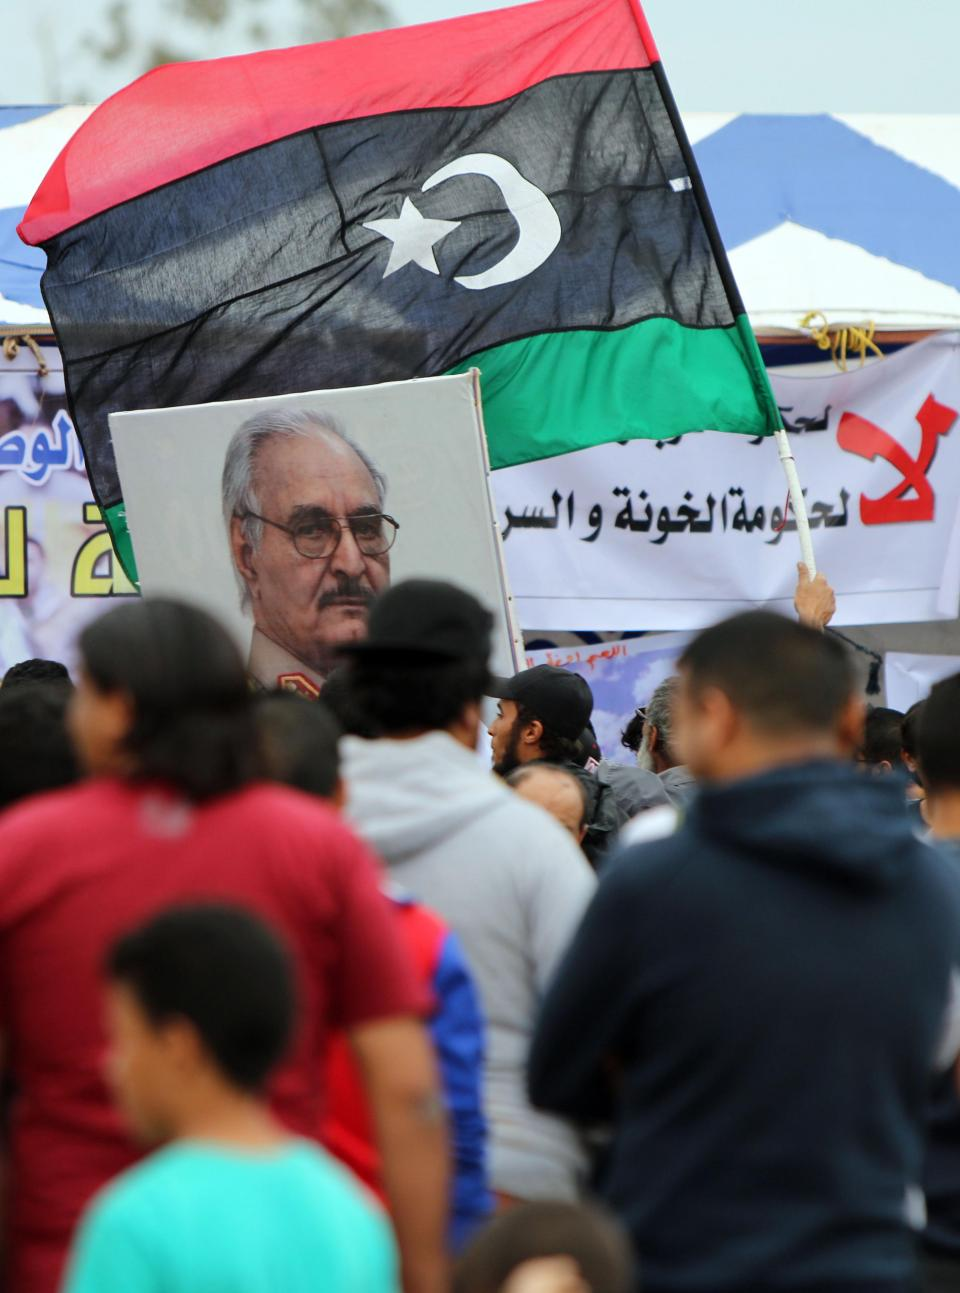 A Libyan demonstrator holds an image of General Khalifa Haftar. Photo: AFP